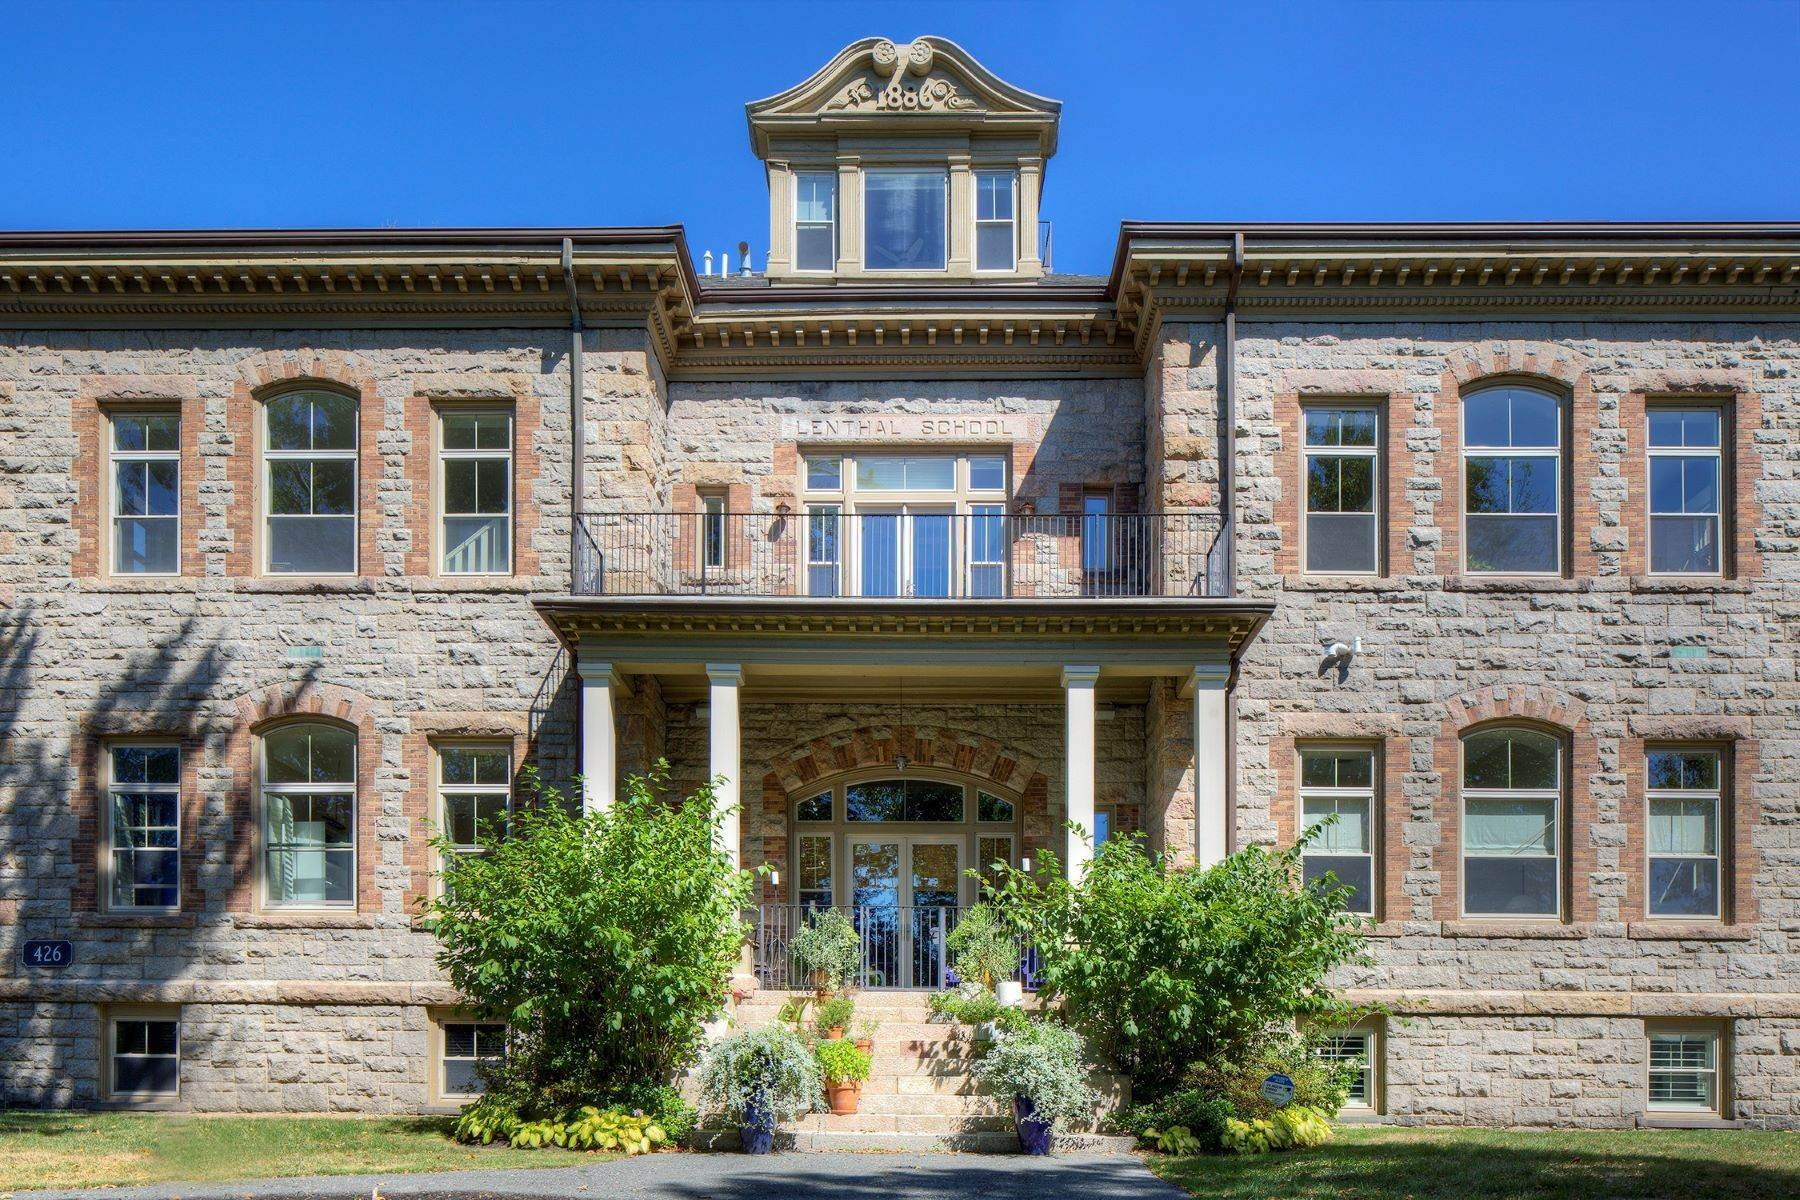 Condominiums for Sale at Lenthal School 426 Spring Street, 206 Newport, Rhode Island 02840 United States